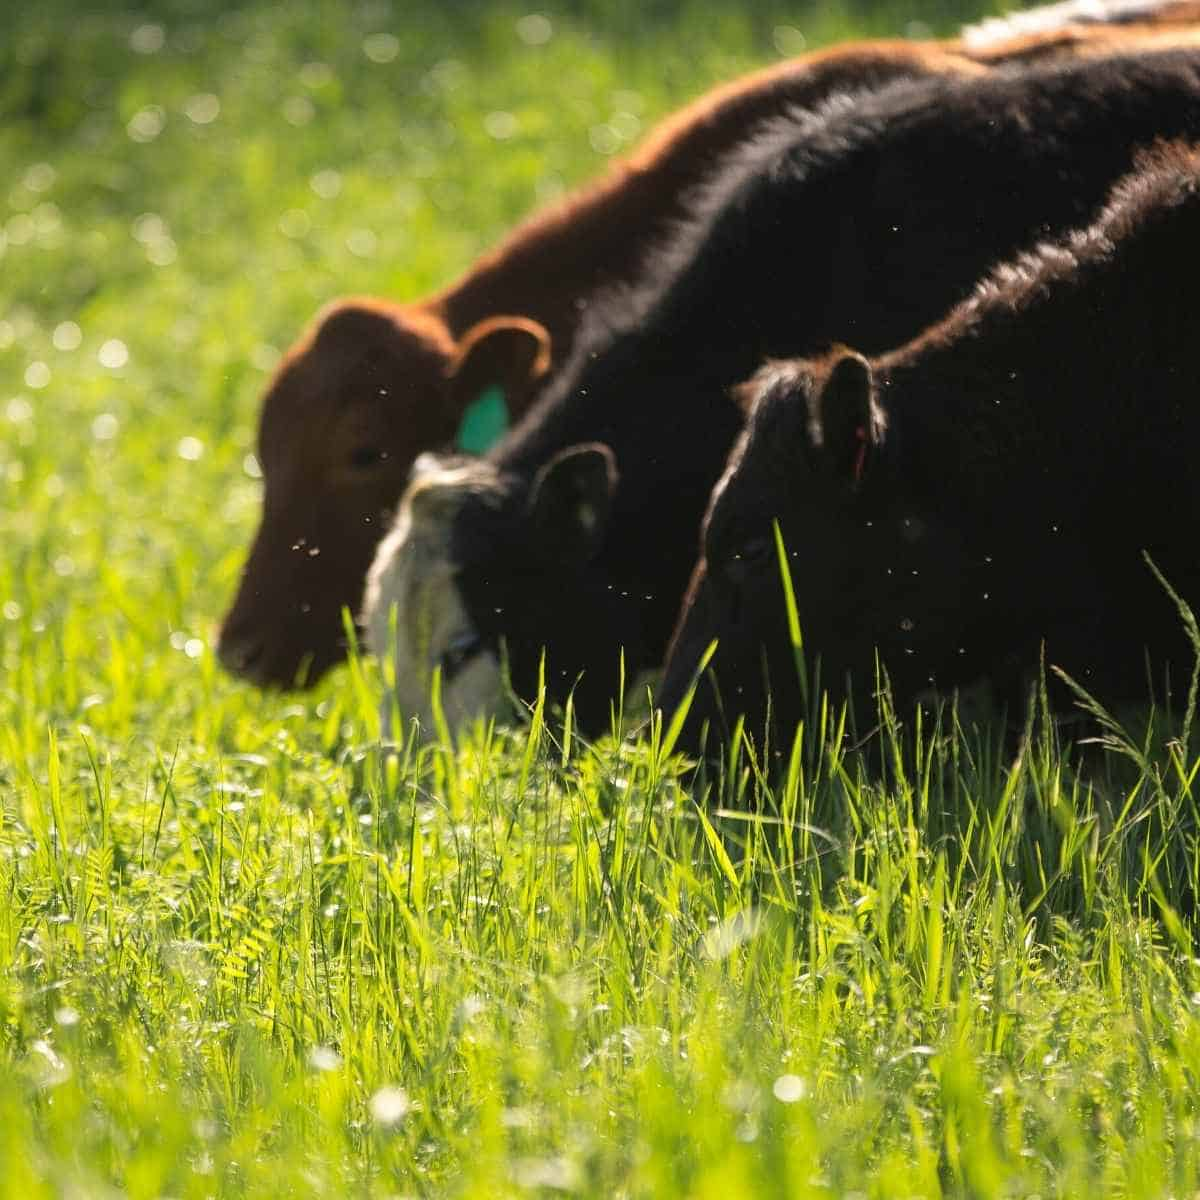 cows eating grass - Eating Sticks of Butter on Keto: A Nutritionist and a Dr. Way In